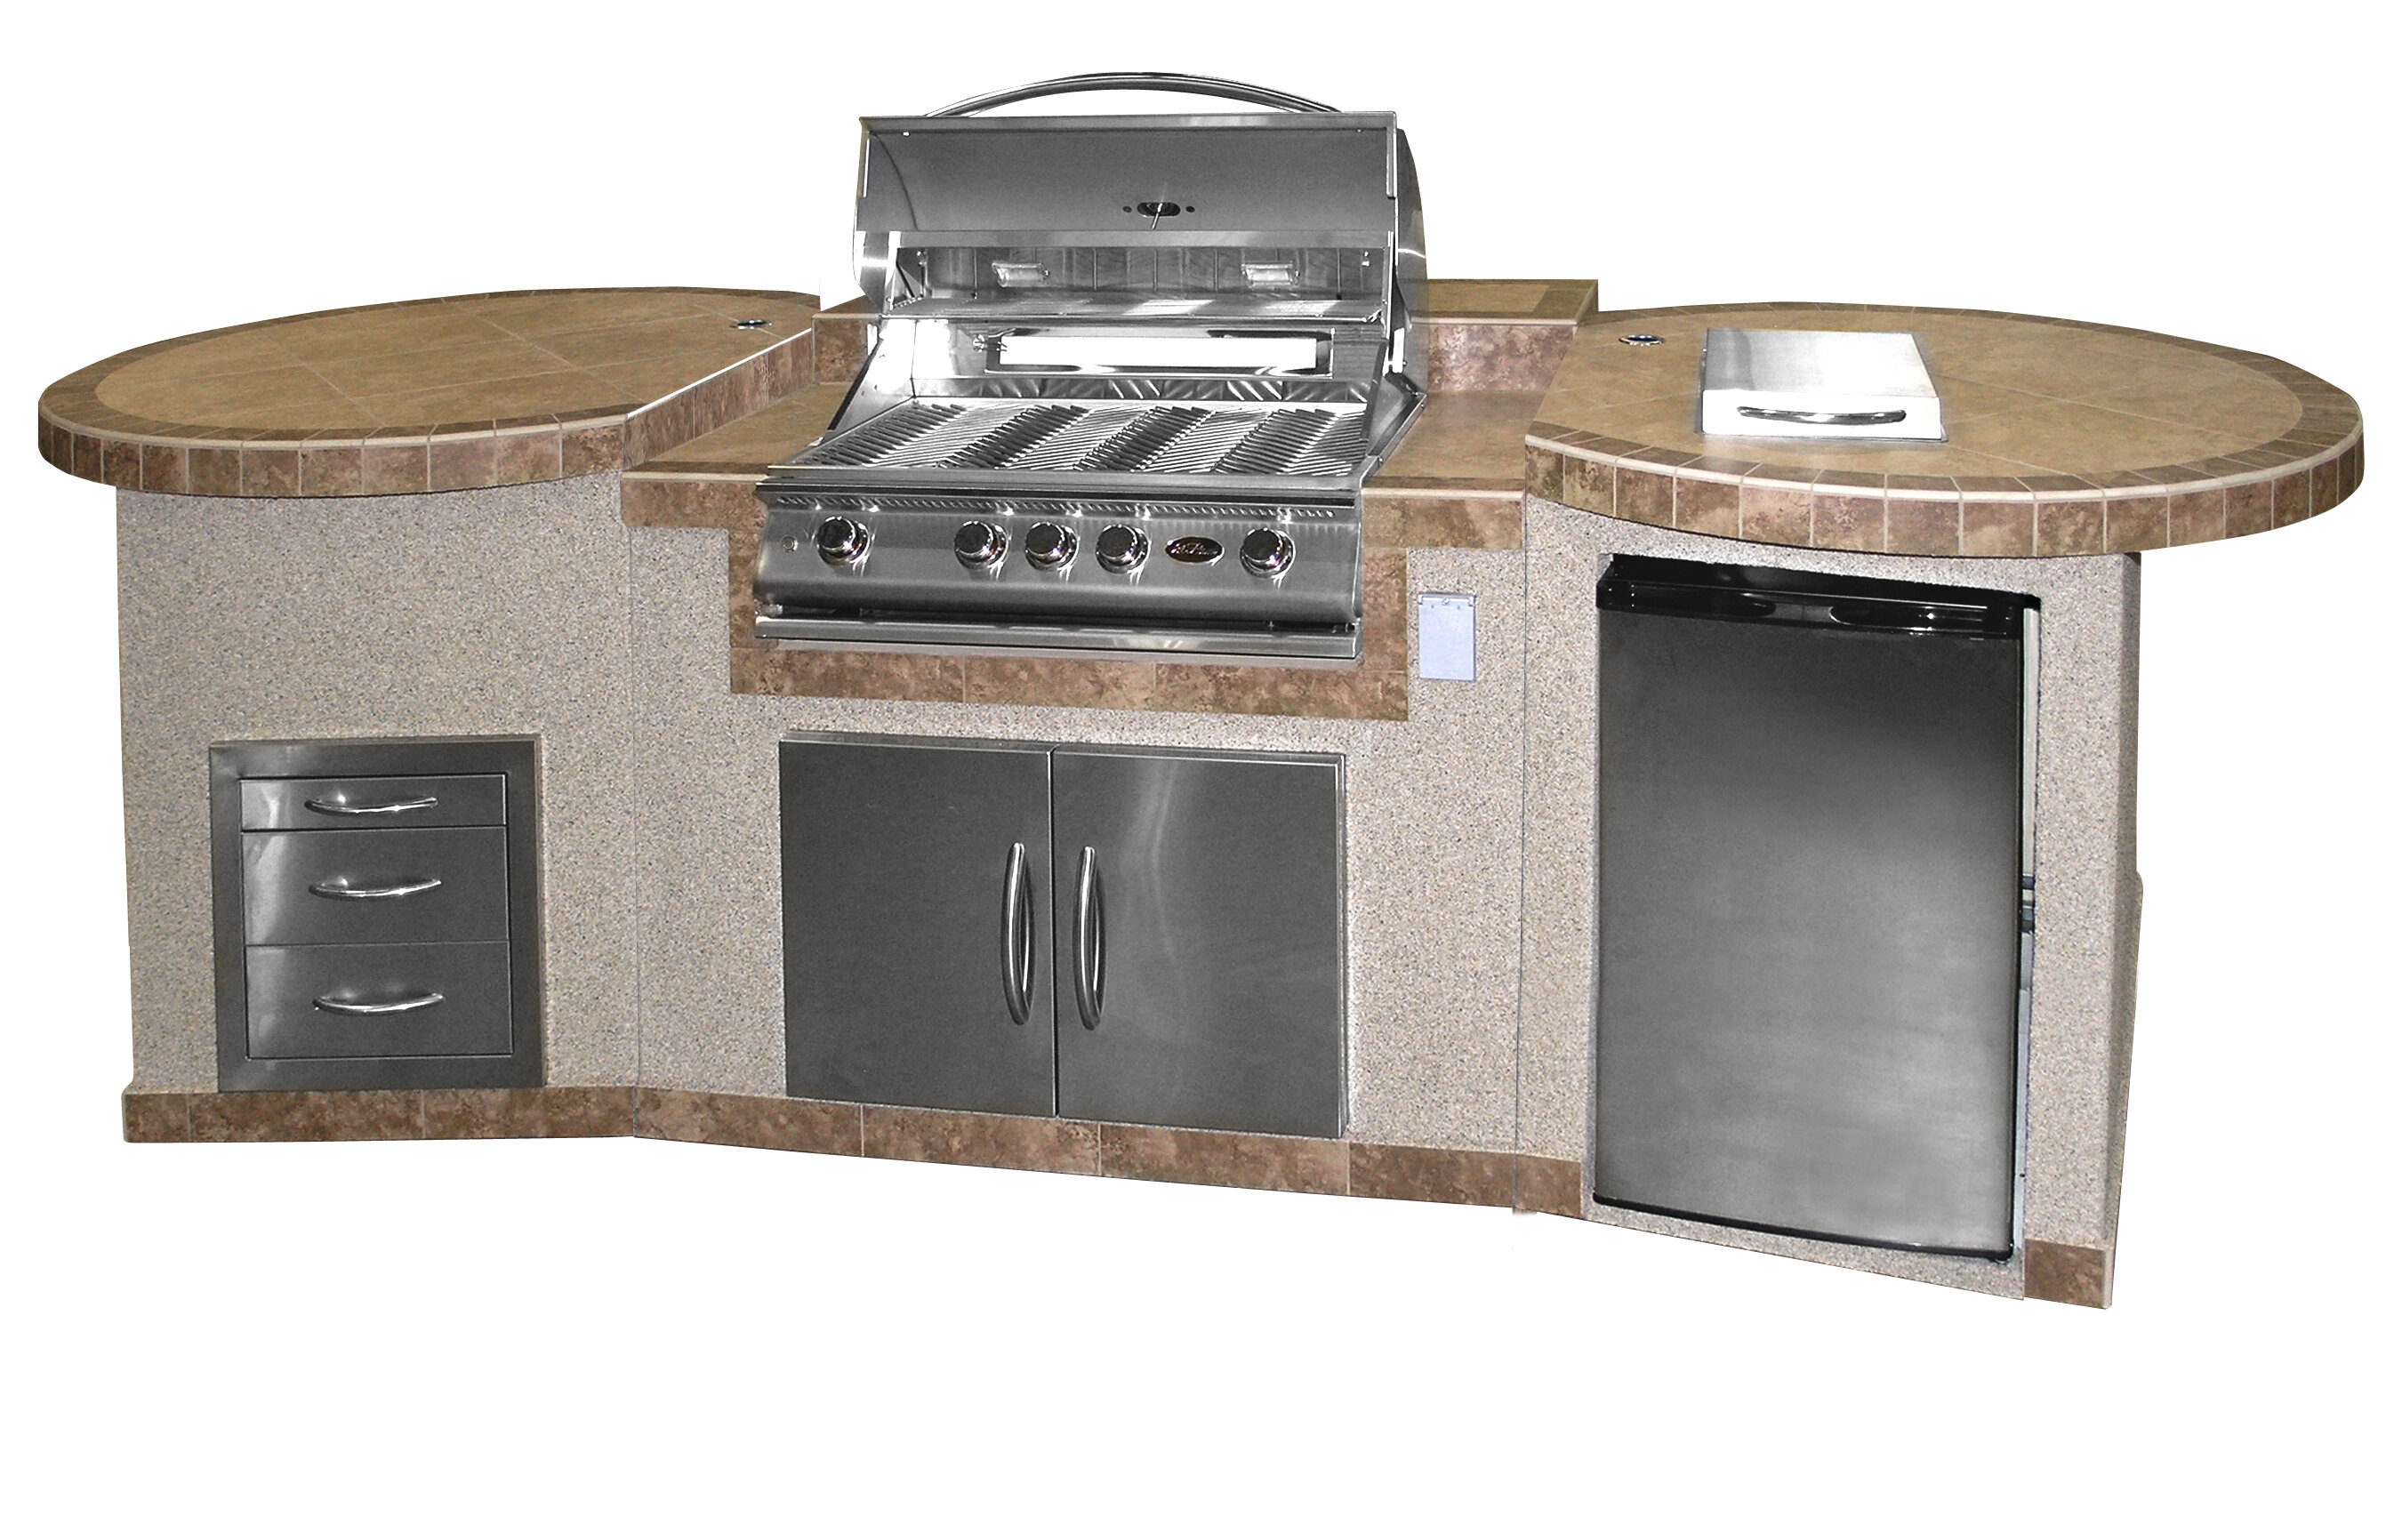 Cal Flame 4-Burner Built In Propane Gas Grill with Cabinet | Wayfair